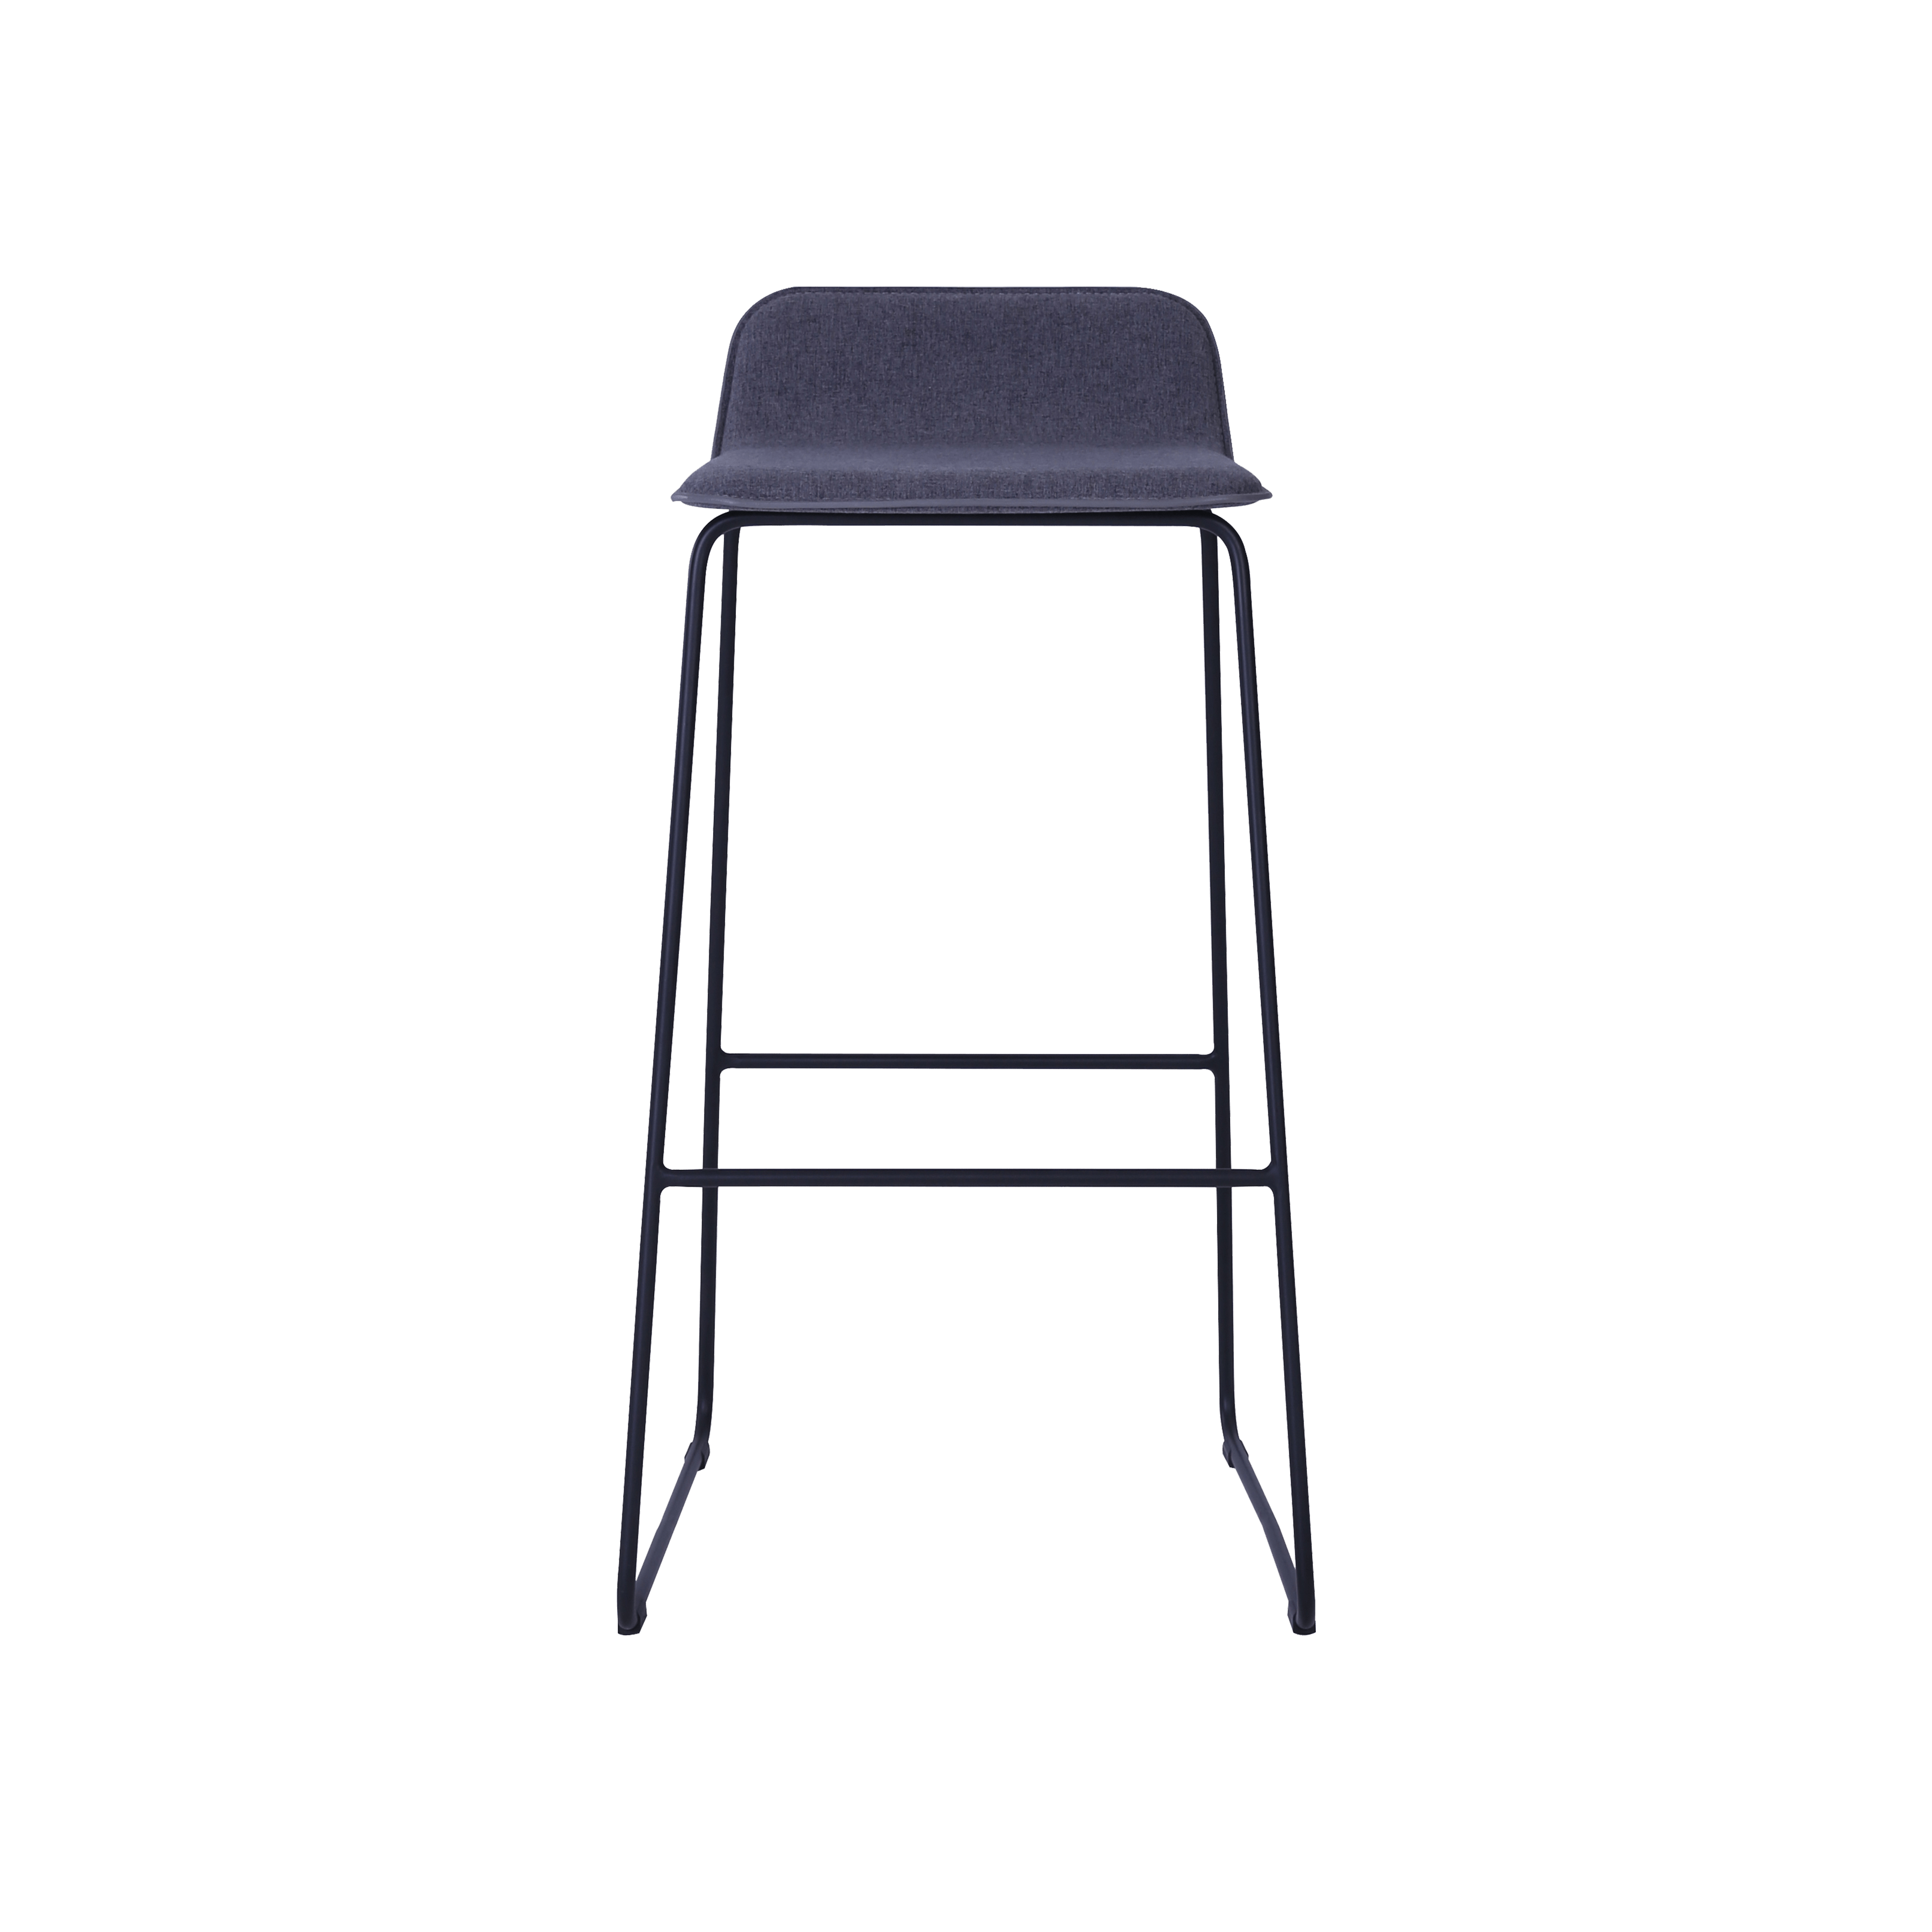 nice chair stool ergonomic requirements buy bar stools dining online in singapore hipvan scotia battleship grey black image 1